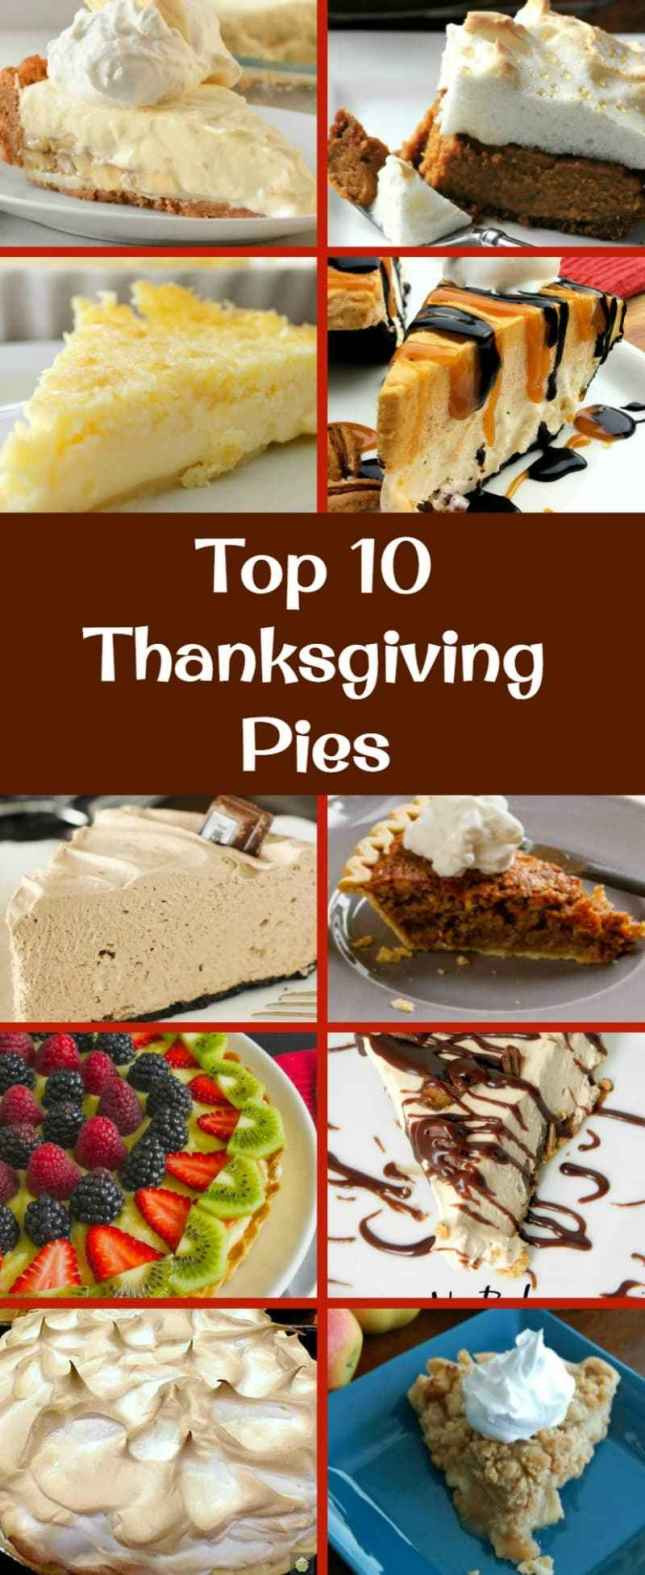 Best Pies For Thanksgiving  The BEST Top 10 Thanksgiving Pies – Lovefoo s